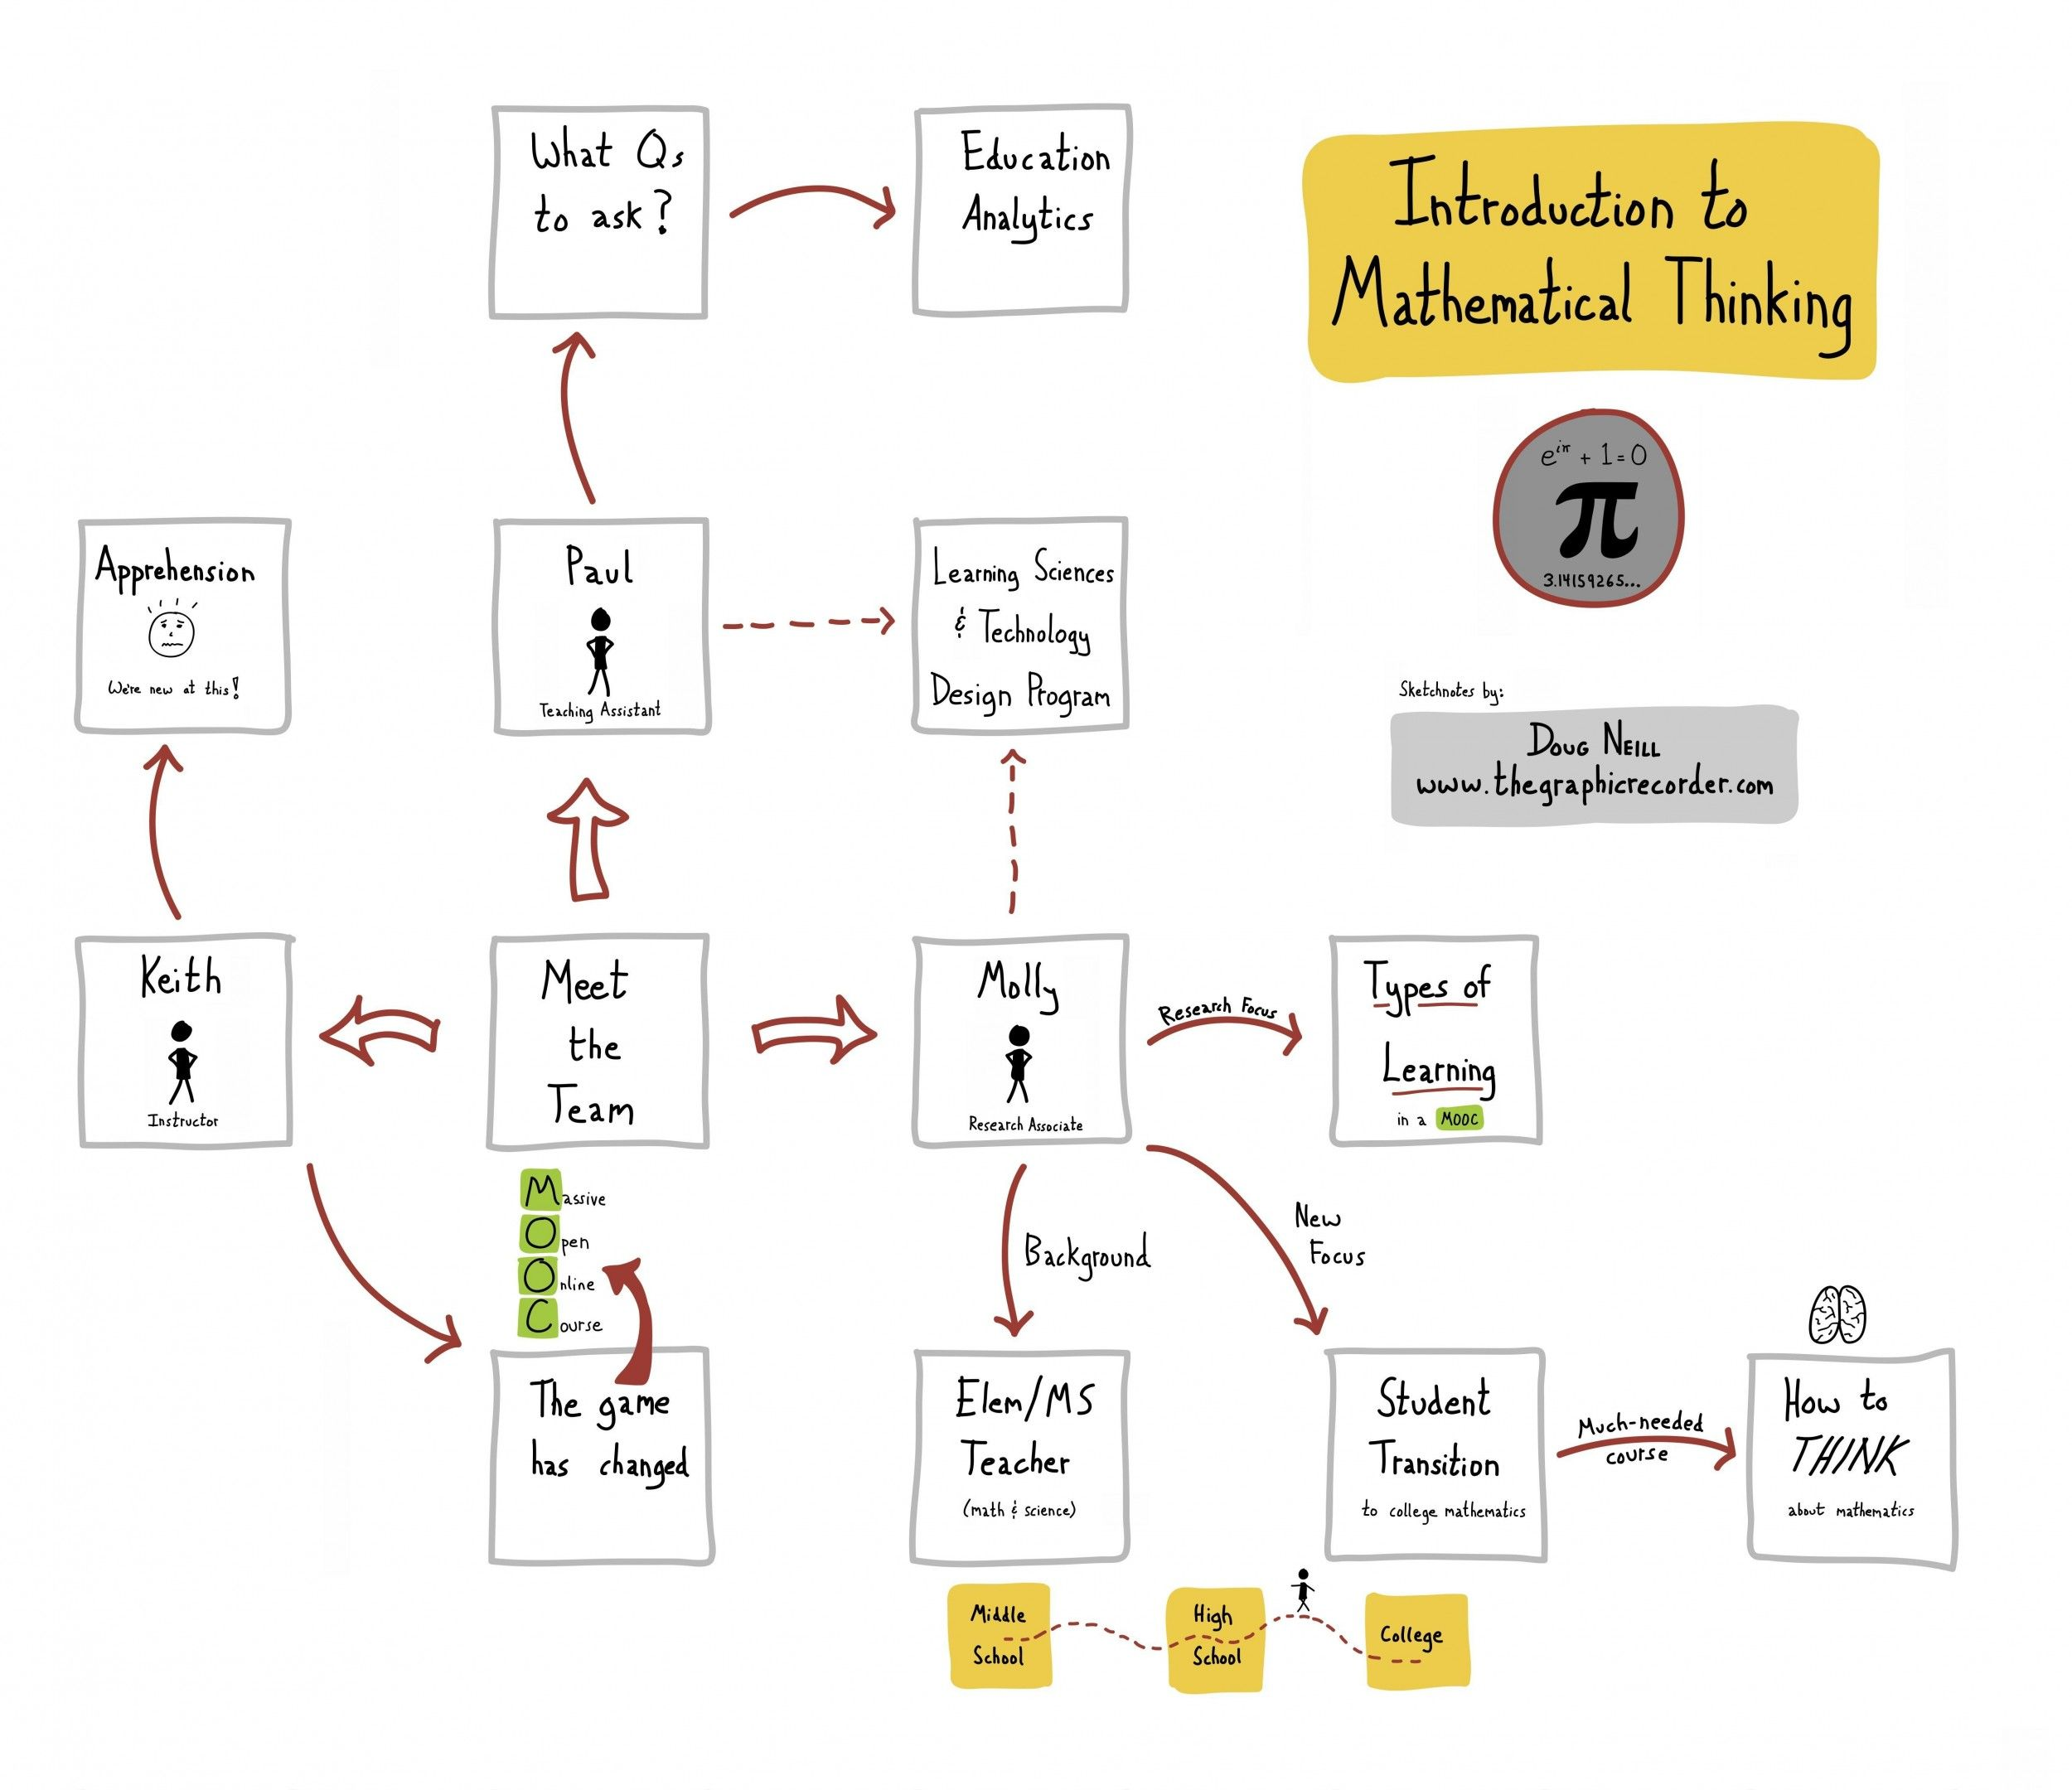 introduction to mathematical thinking sketchnotes meet the team